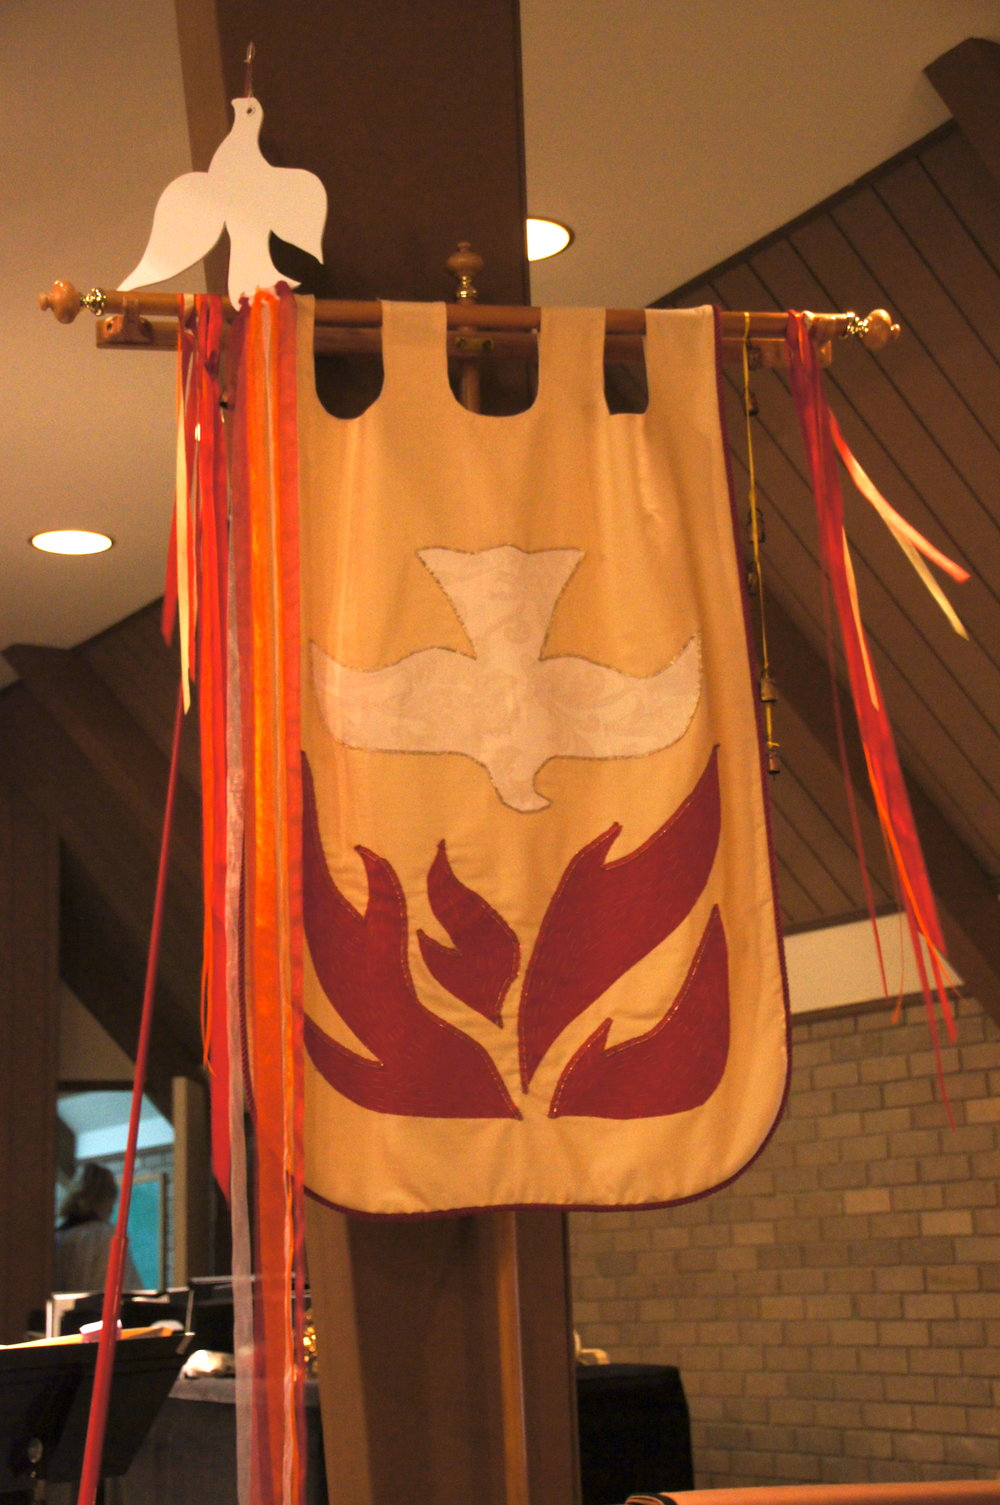 Pentecost banner and dove St. Luke's Episcopal Church North Little Rock